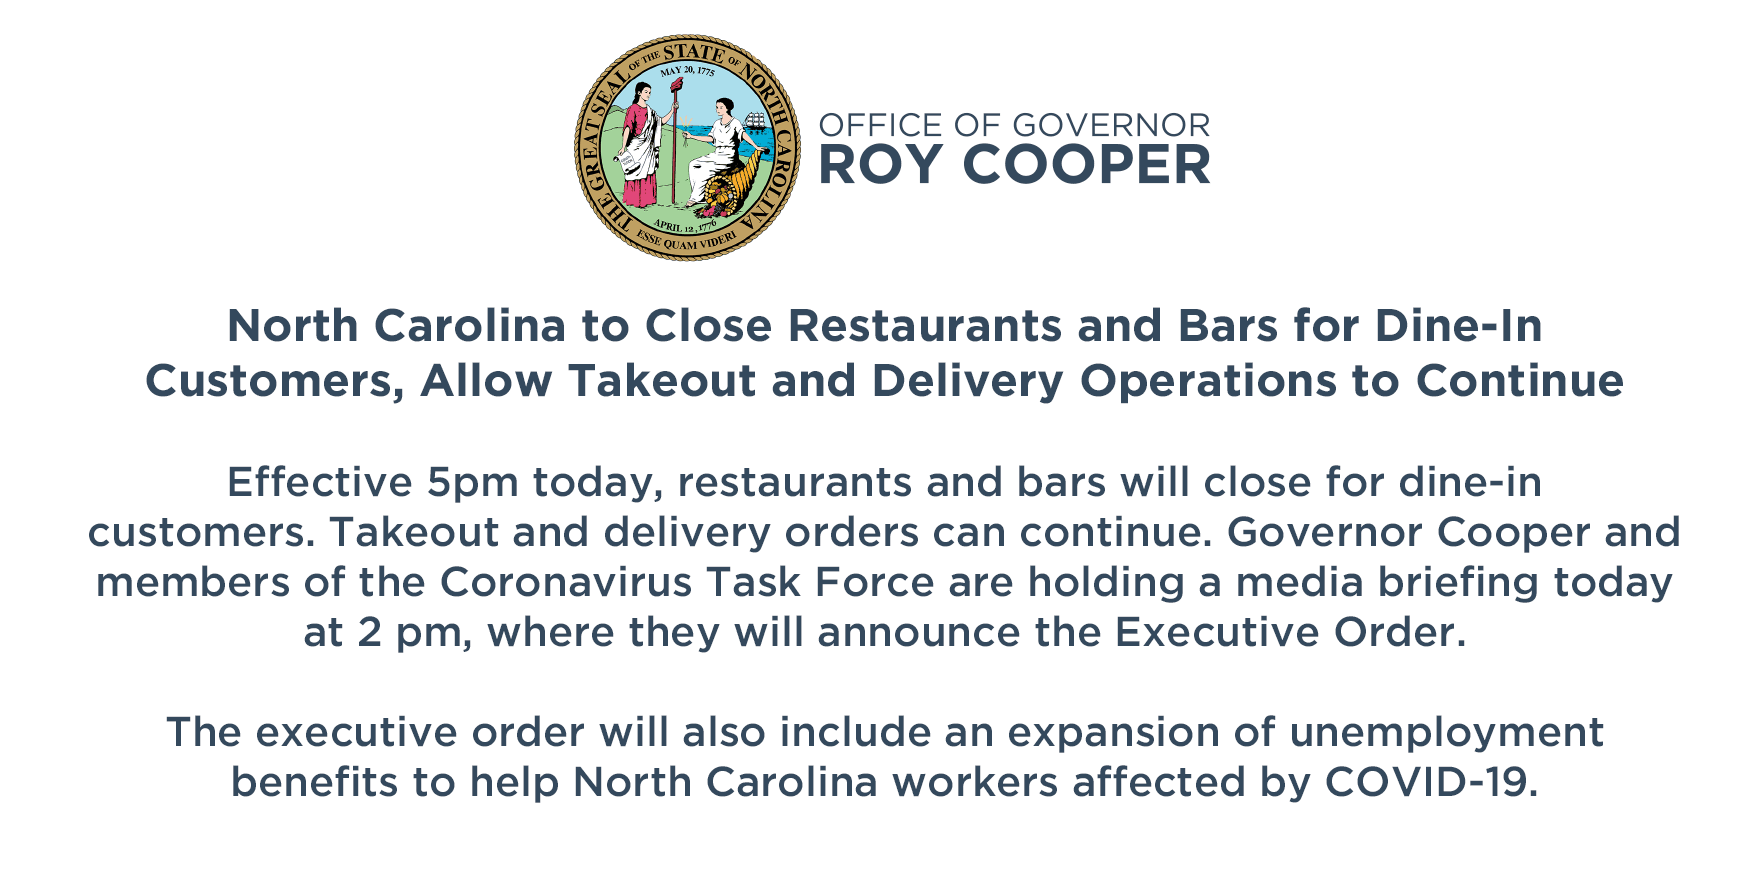 Executive order for dine-in customers and changes to unemployment